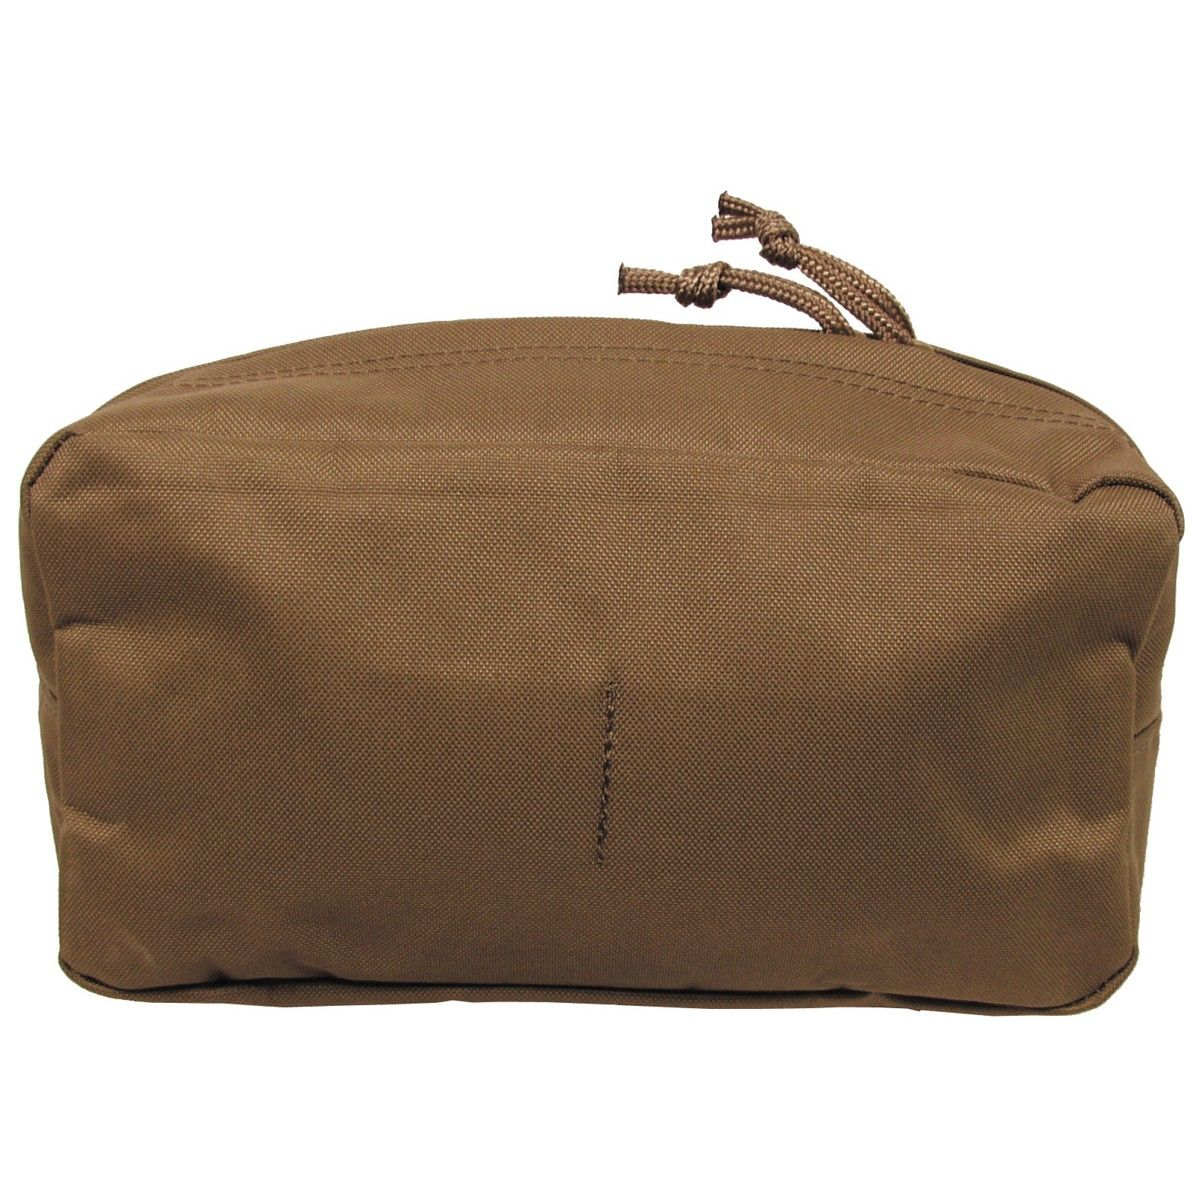 Mfh Large Utility Pouch Coyote